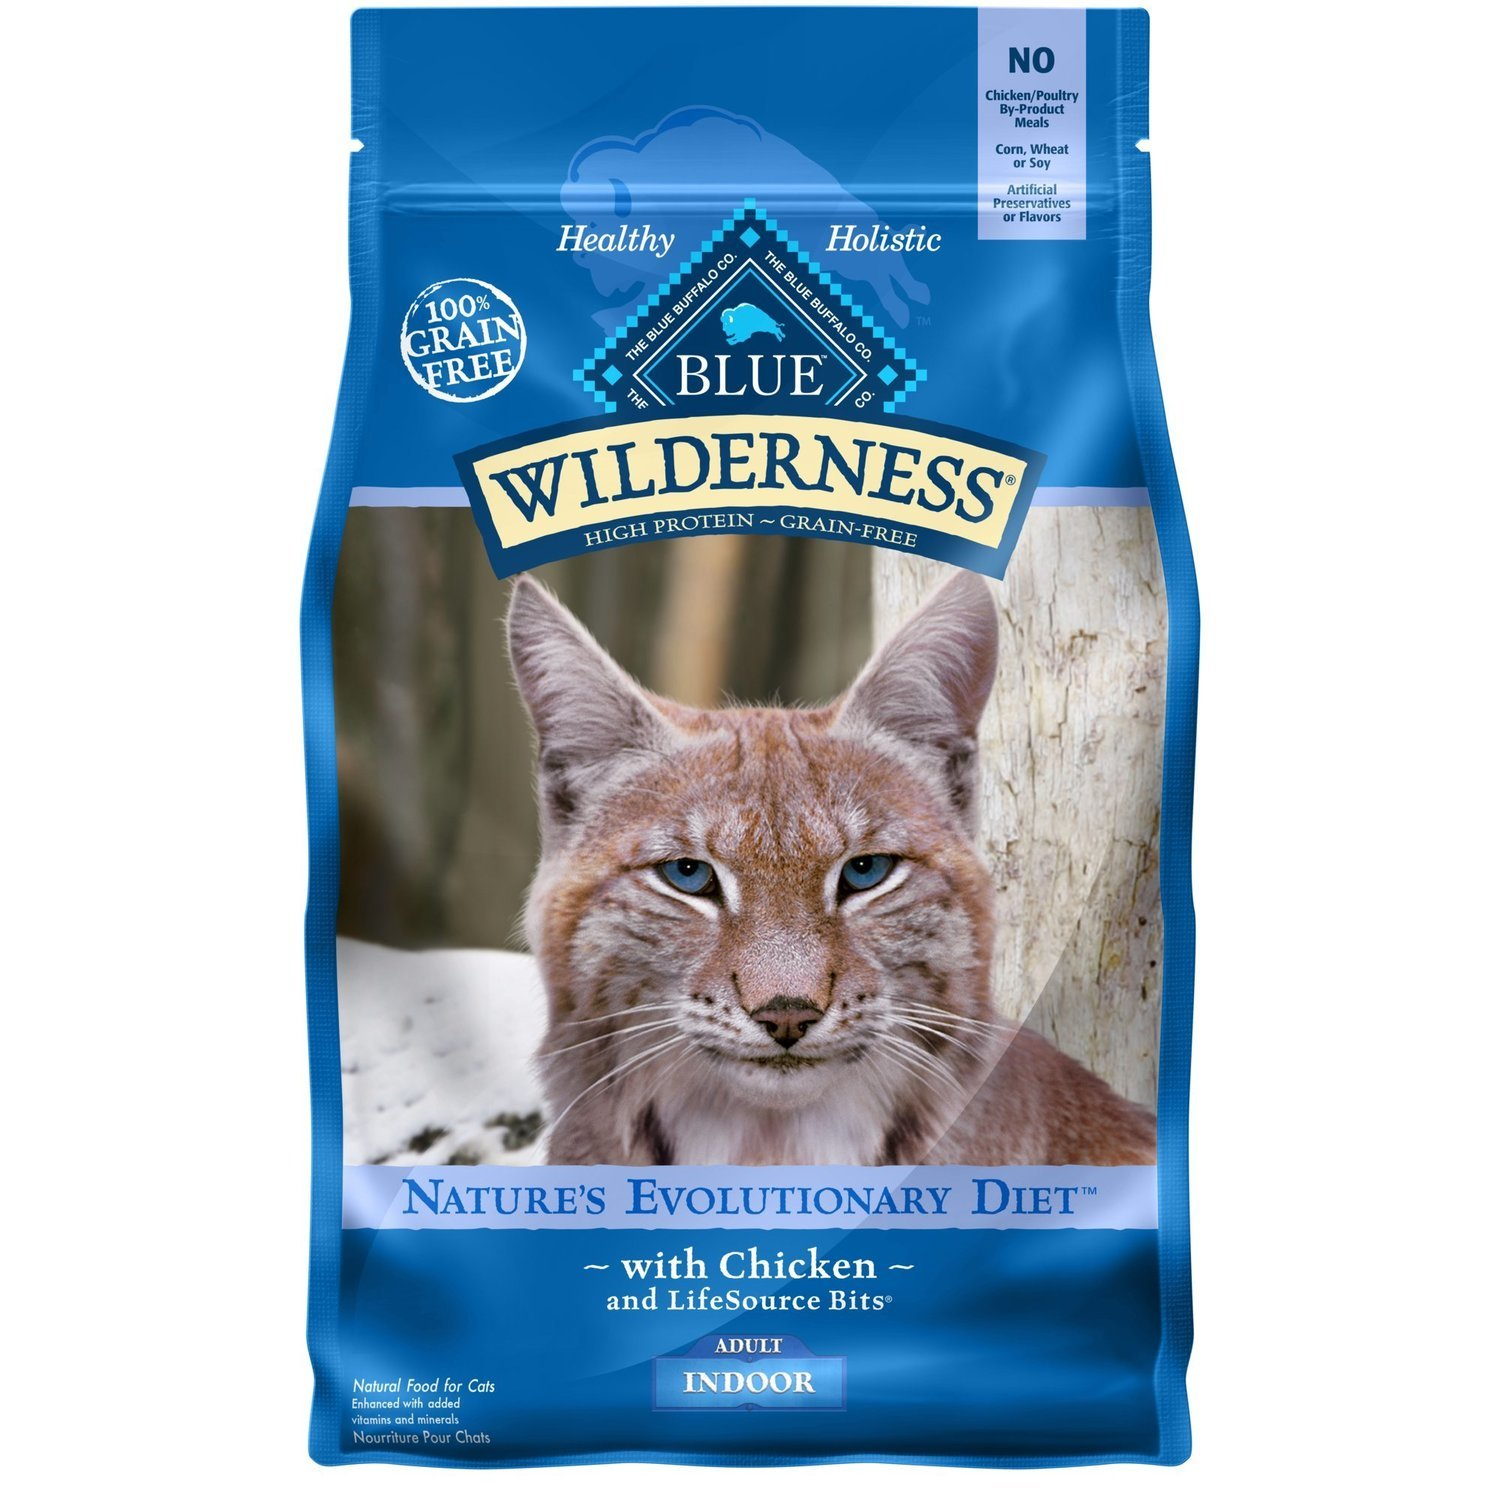 Blue Buffalo Wilderness Indoor Chicken Adult Dry Cat Food, 2 lbs. (9/18) (A.K1)